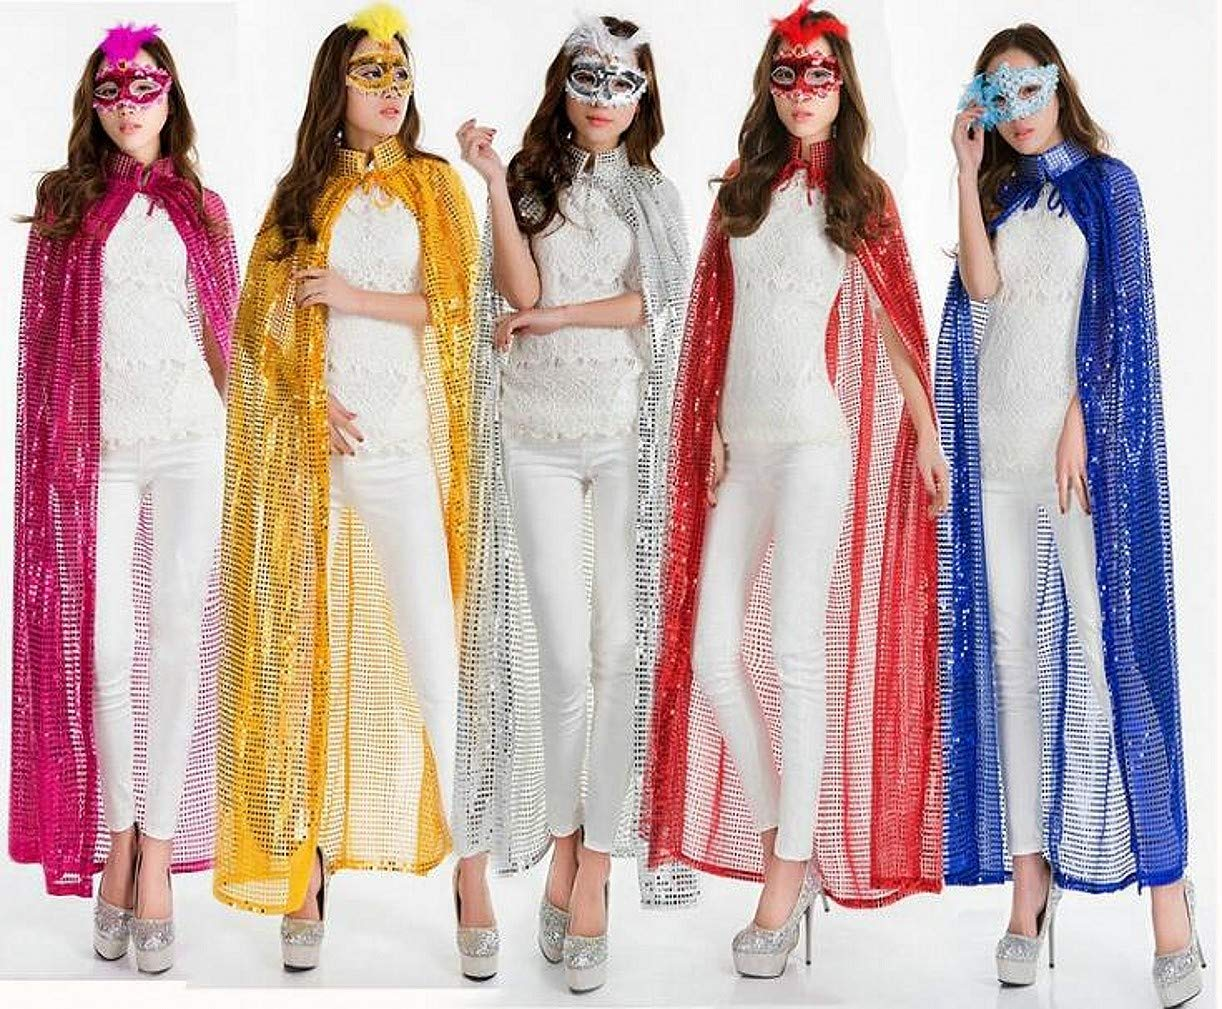 WellieSTR 5 Color Halloween Party Festival Magic Cosplay Sequin Costume Cloak Cape Robe Outwear